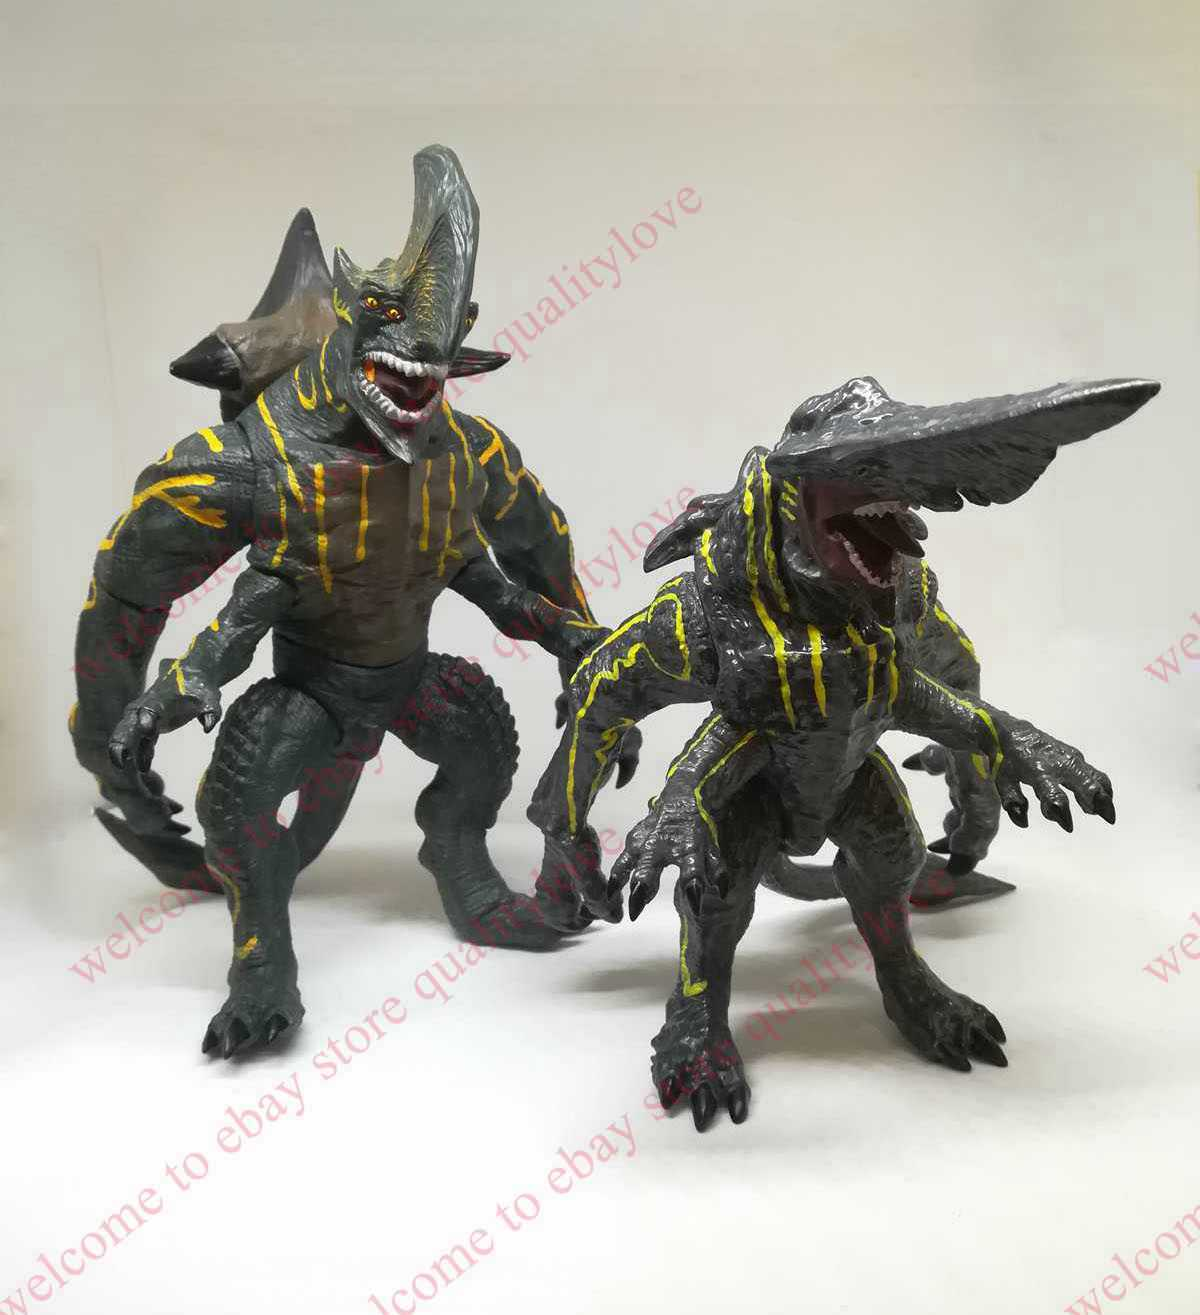 Pacific Rim Kaiju Knifehead   Trespasser Action Figure Statue Toy No Box